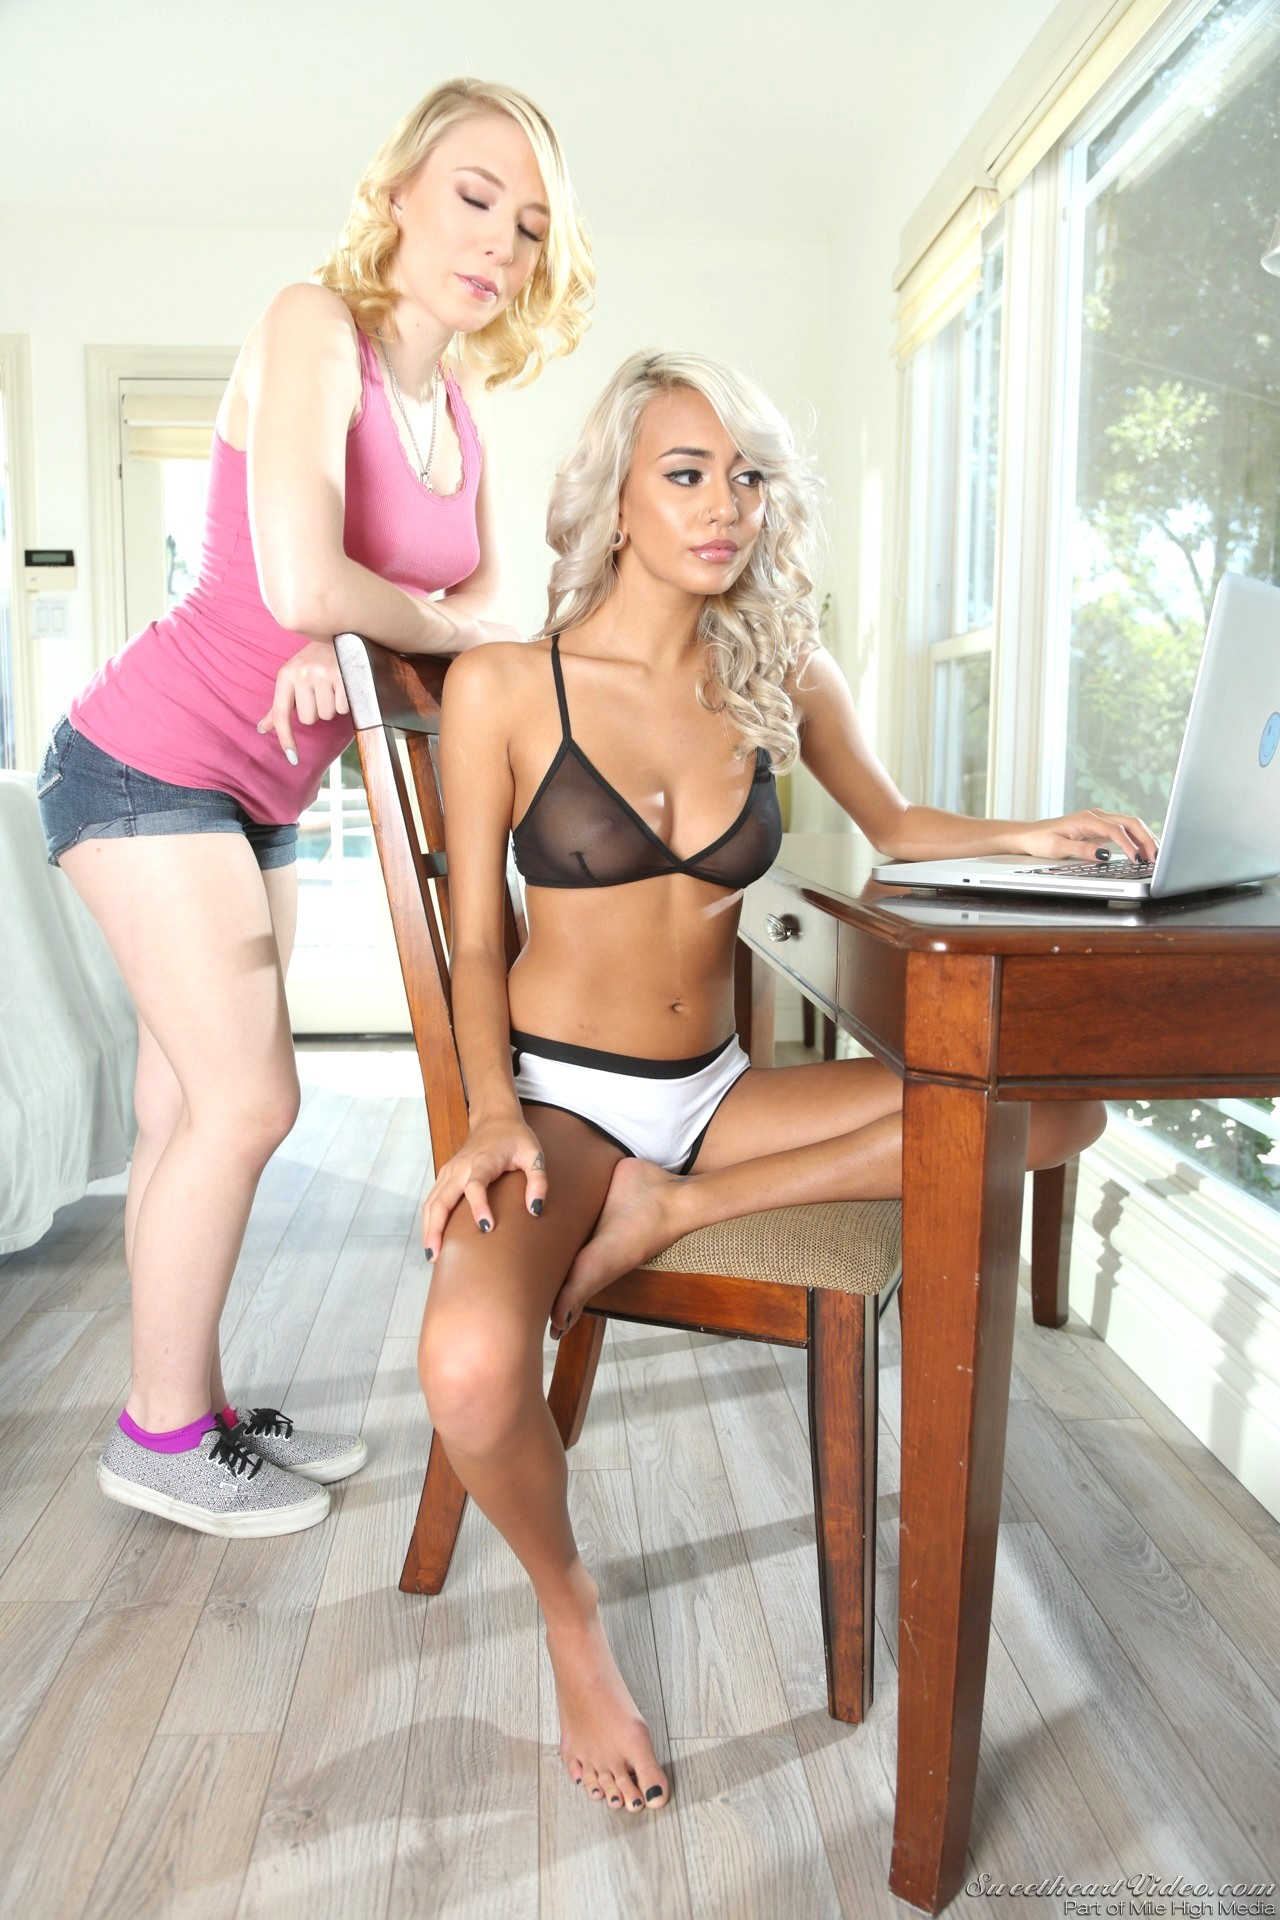 Xvideos janice griffith